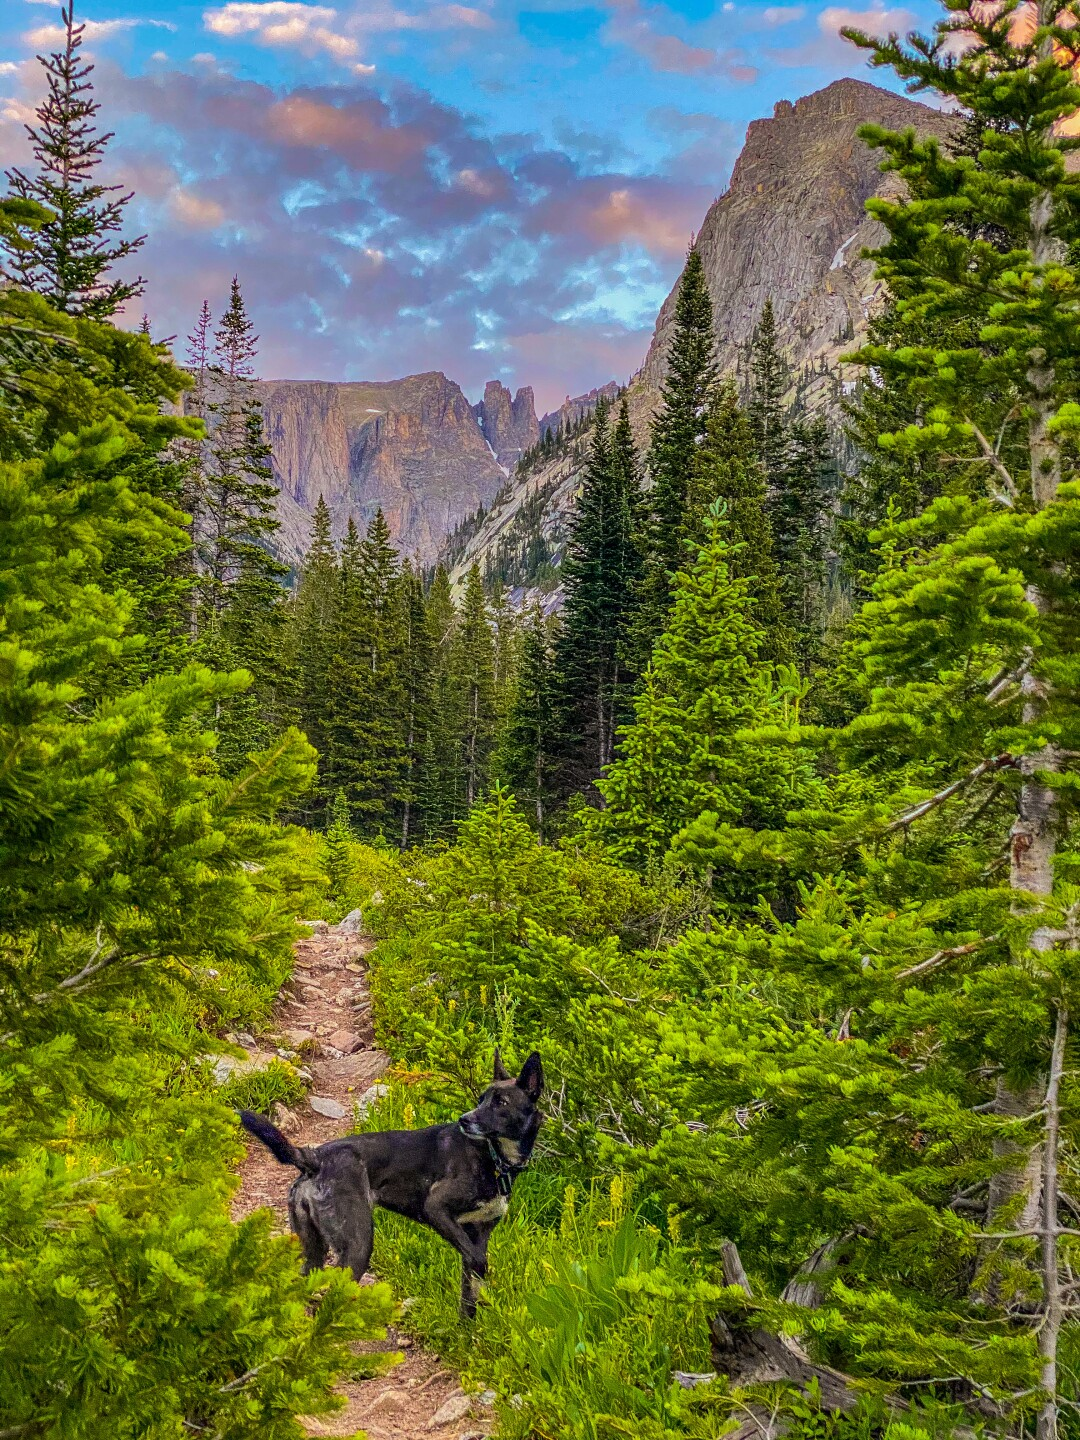 Jonathan Mather's dog_barefoot 14ers